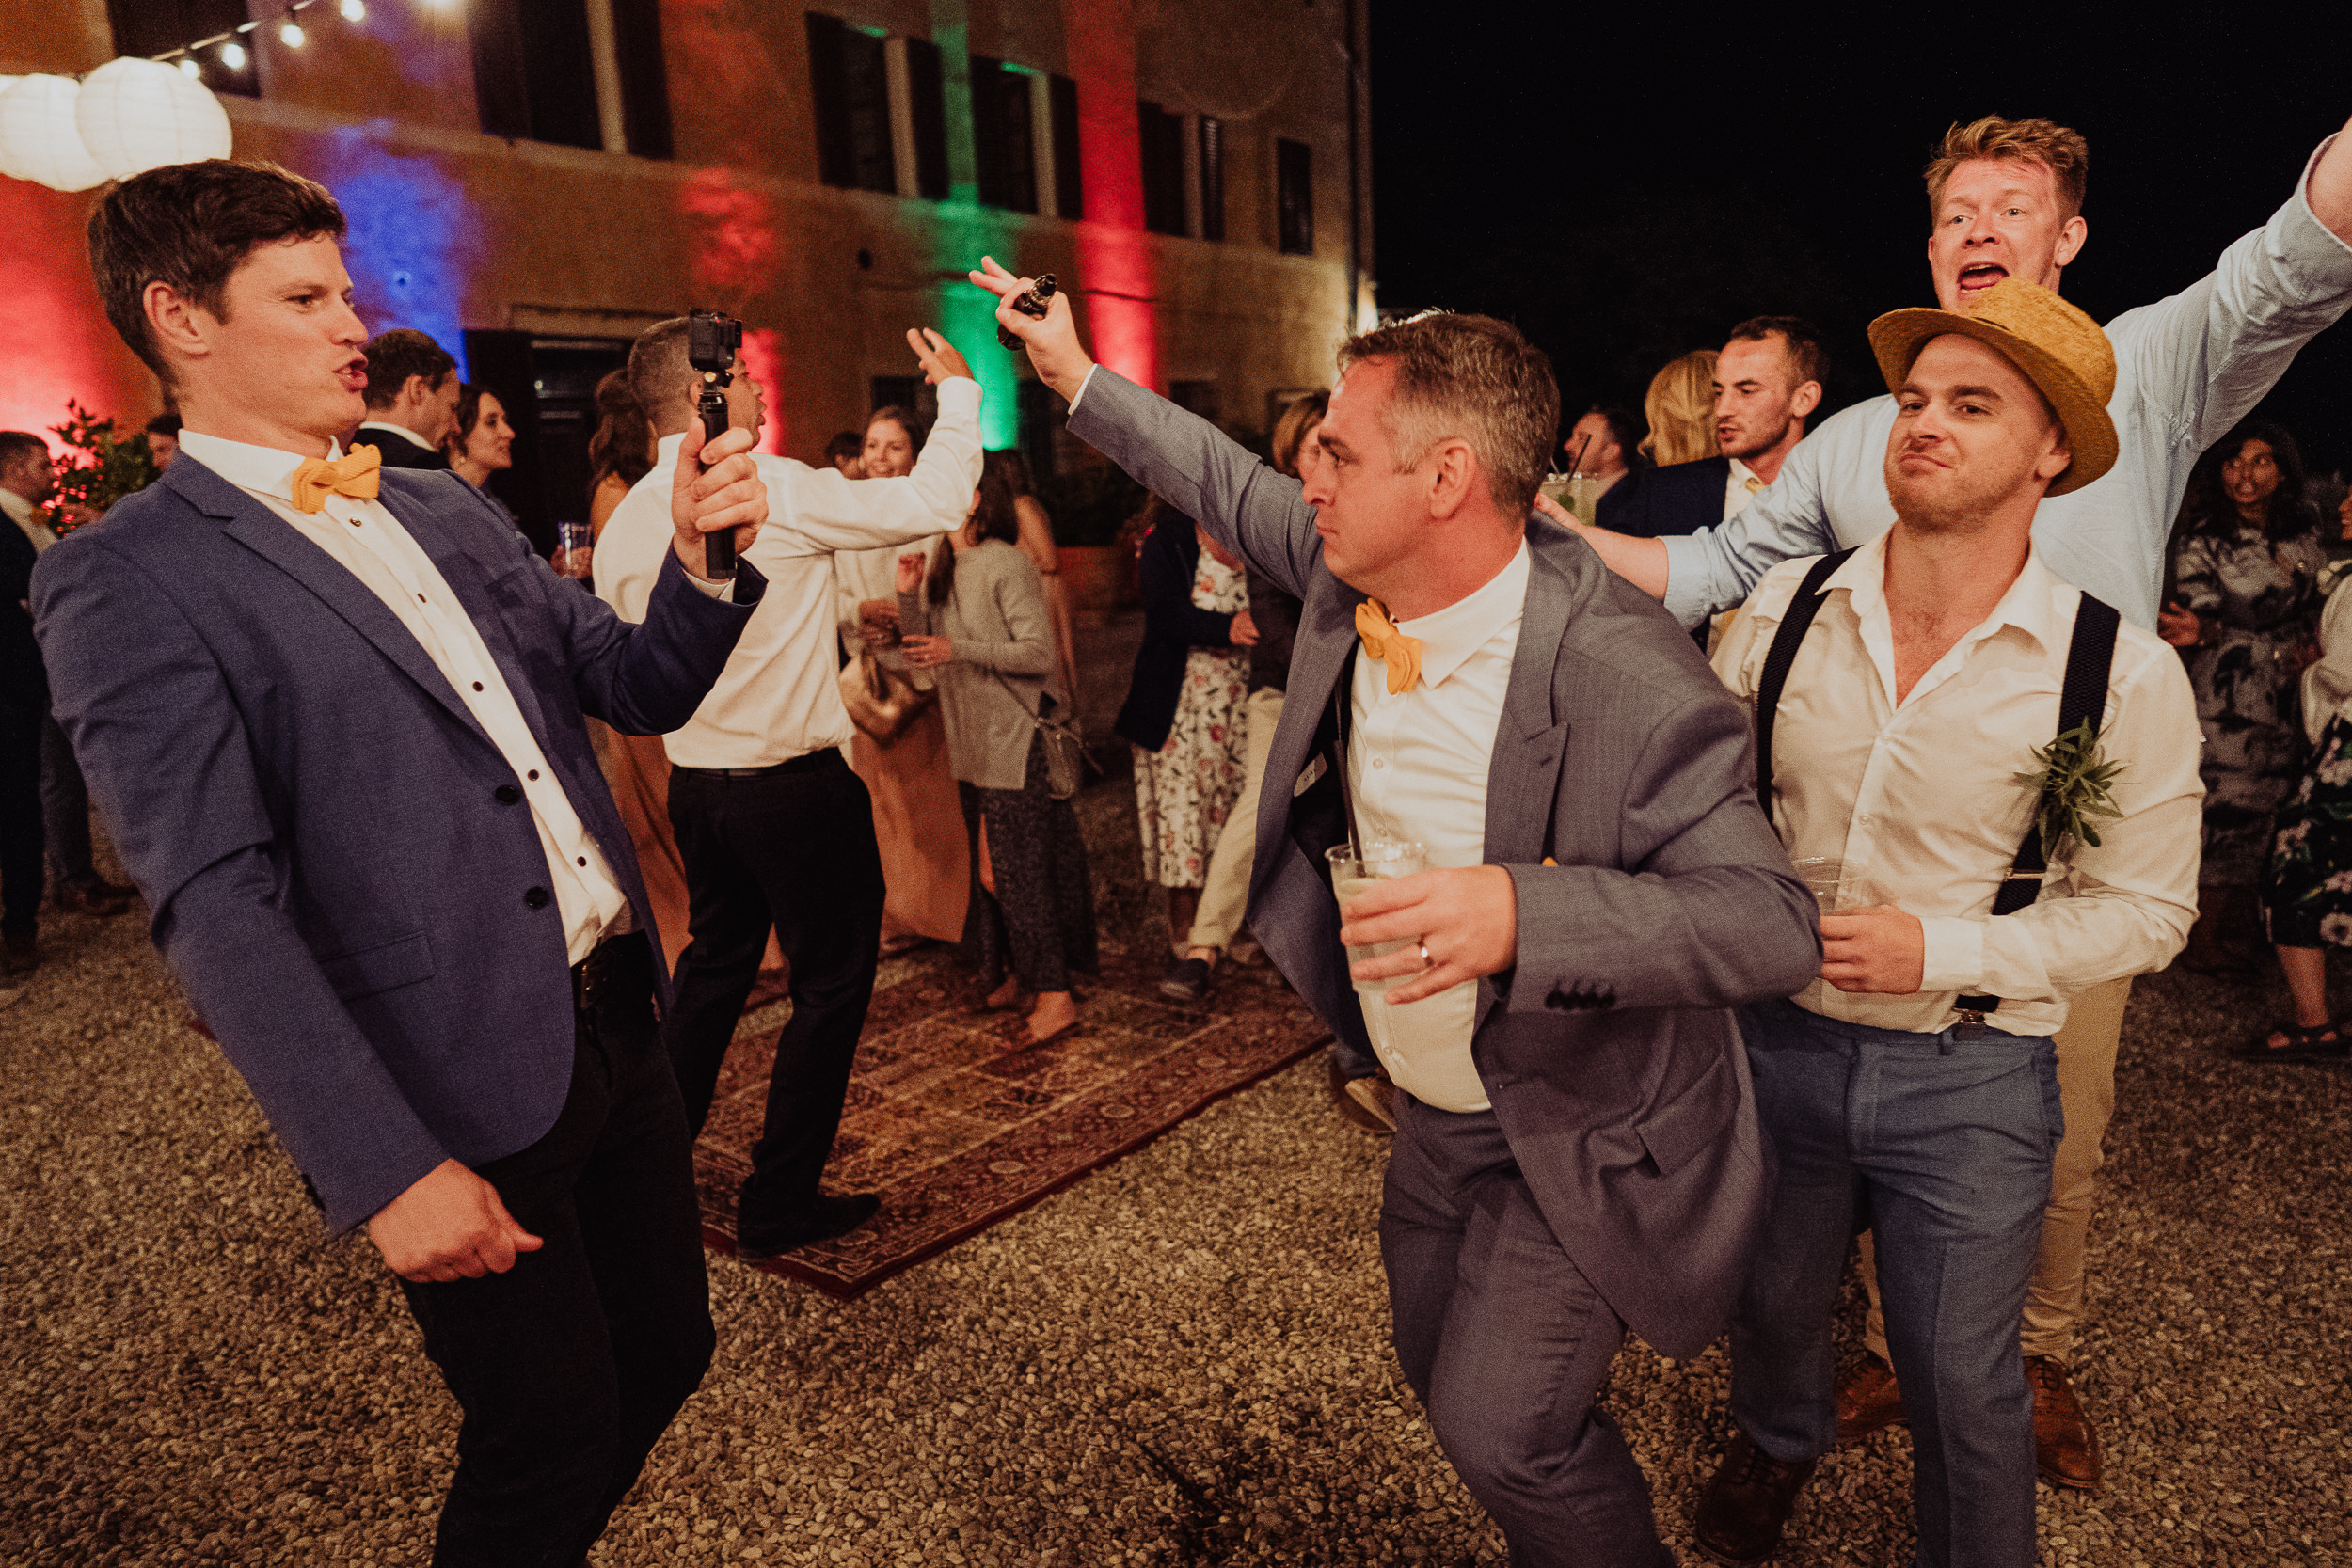 Tuscan Villa Wedding - The groom leads the conga round the dancefloor